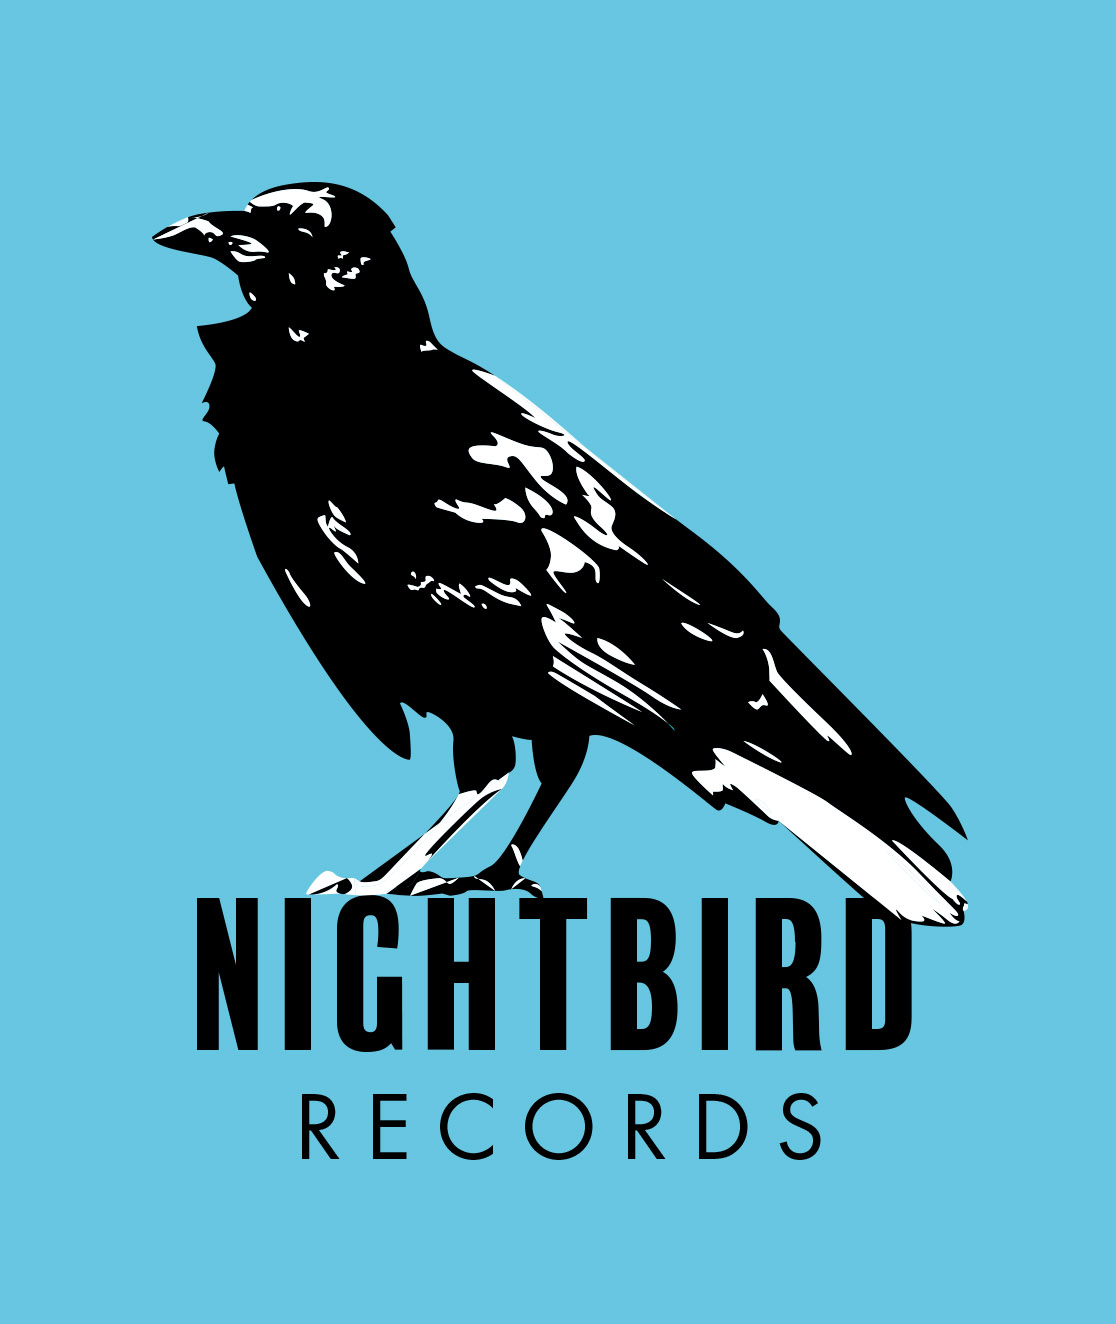 Nightbird Records